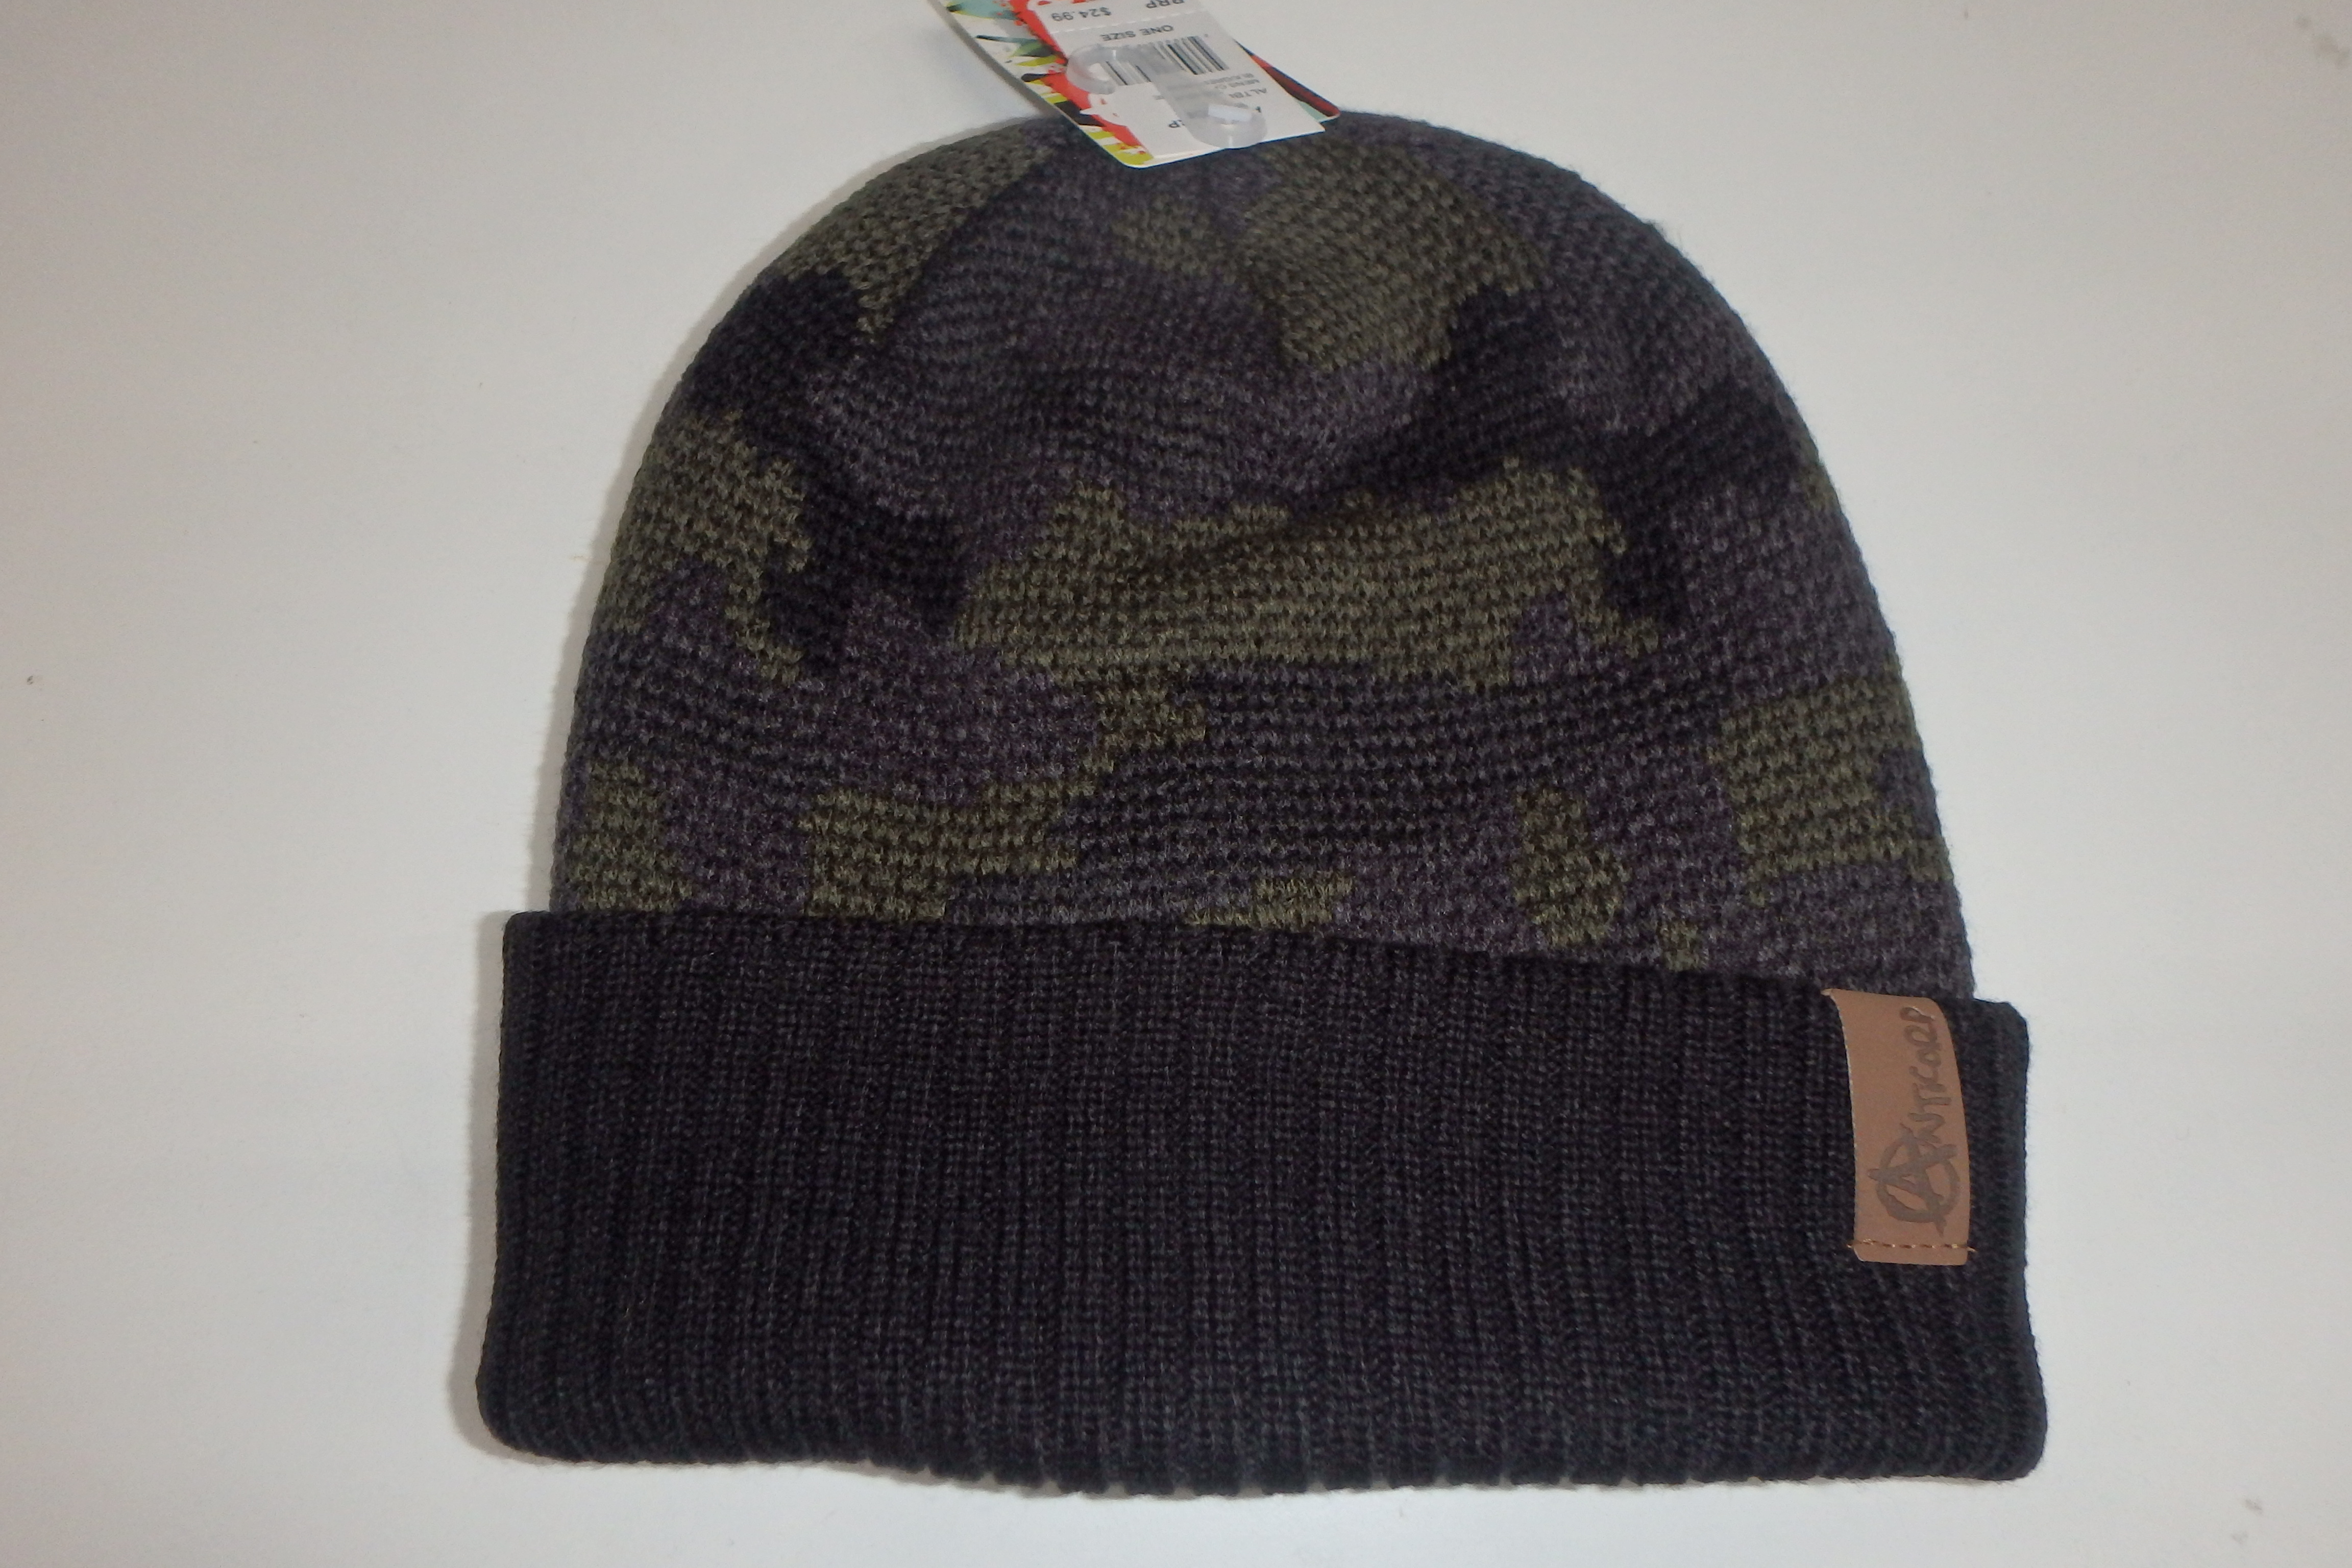 f1d61bc872bc2 Anticorp Camo Lined Beanie Black Green